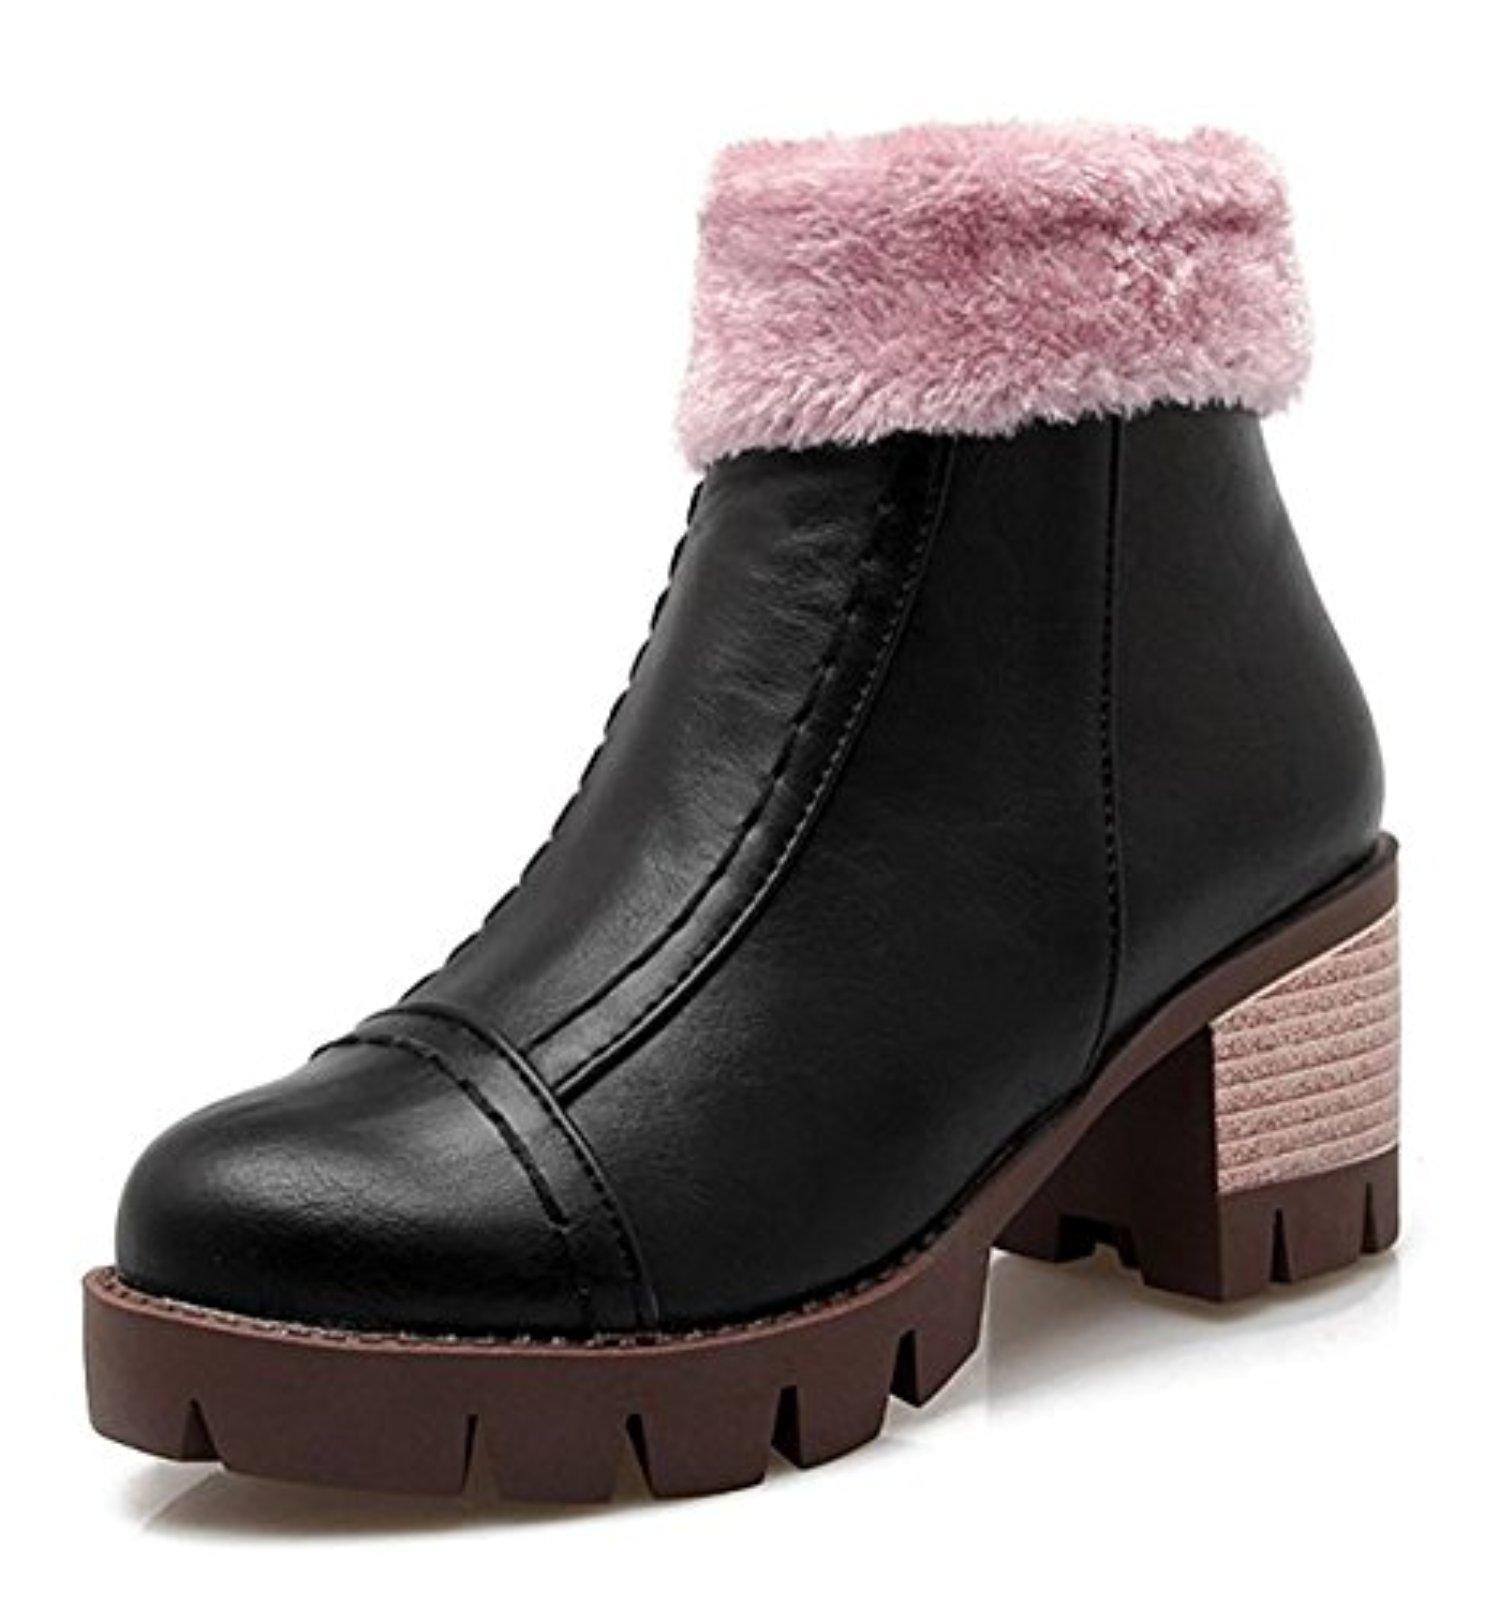 CHFSO Women's Warm Solid Round Toe Zipper Mid Chunky Heel Platform Ankle Boots Black 9 B(M) US